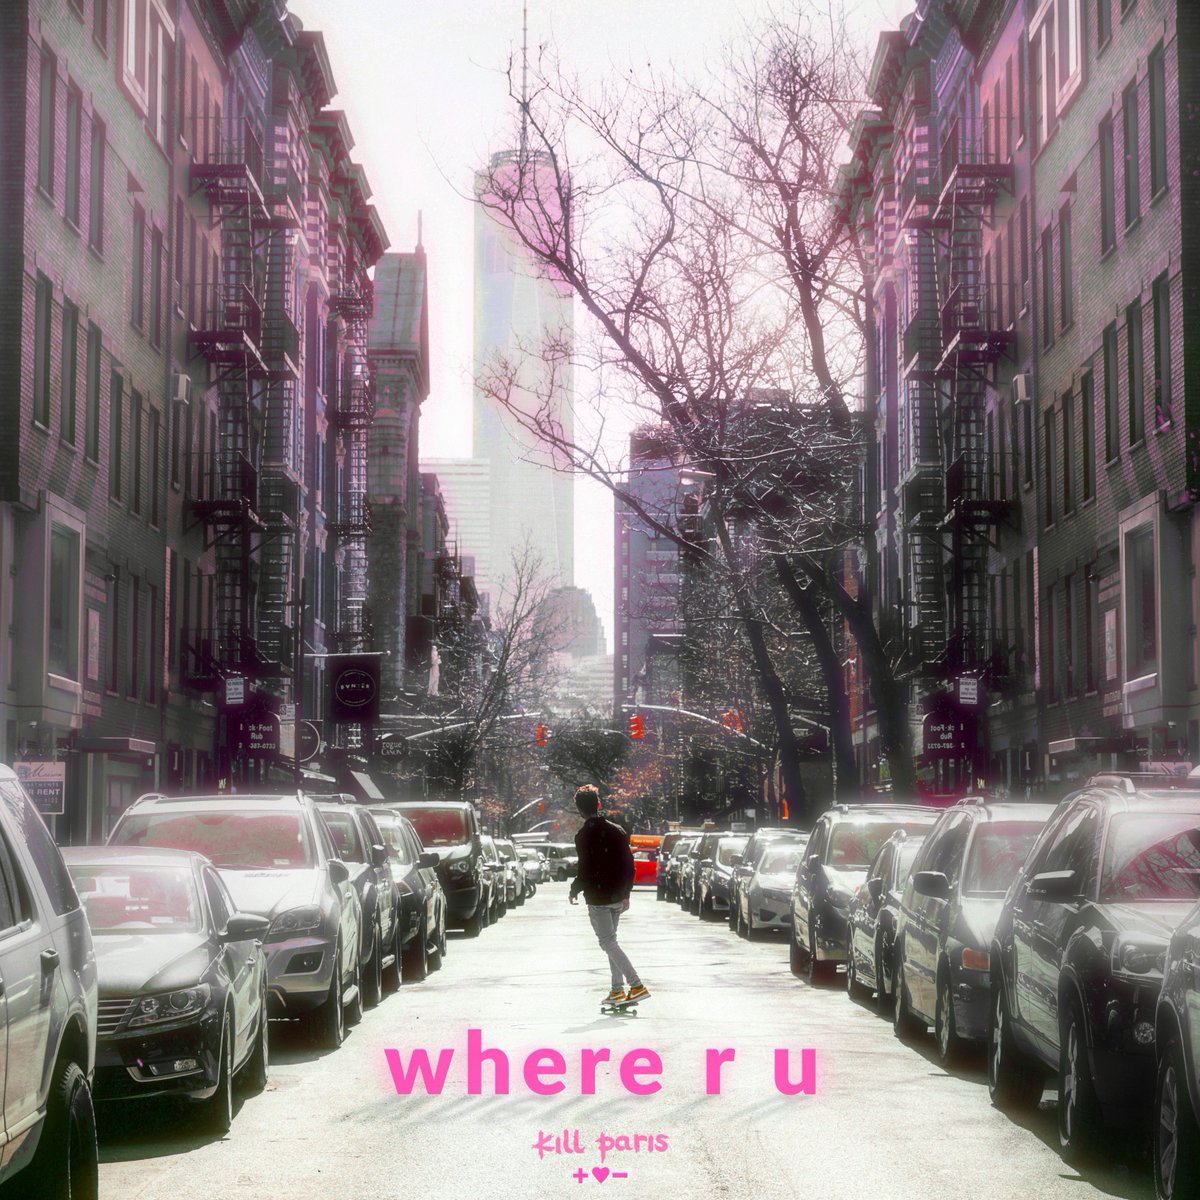 New song 'where r u' by Kill Paris has a completely different style.